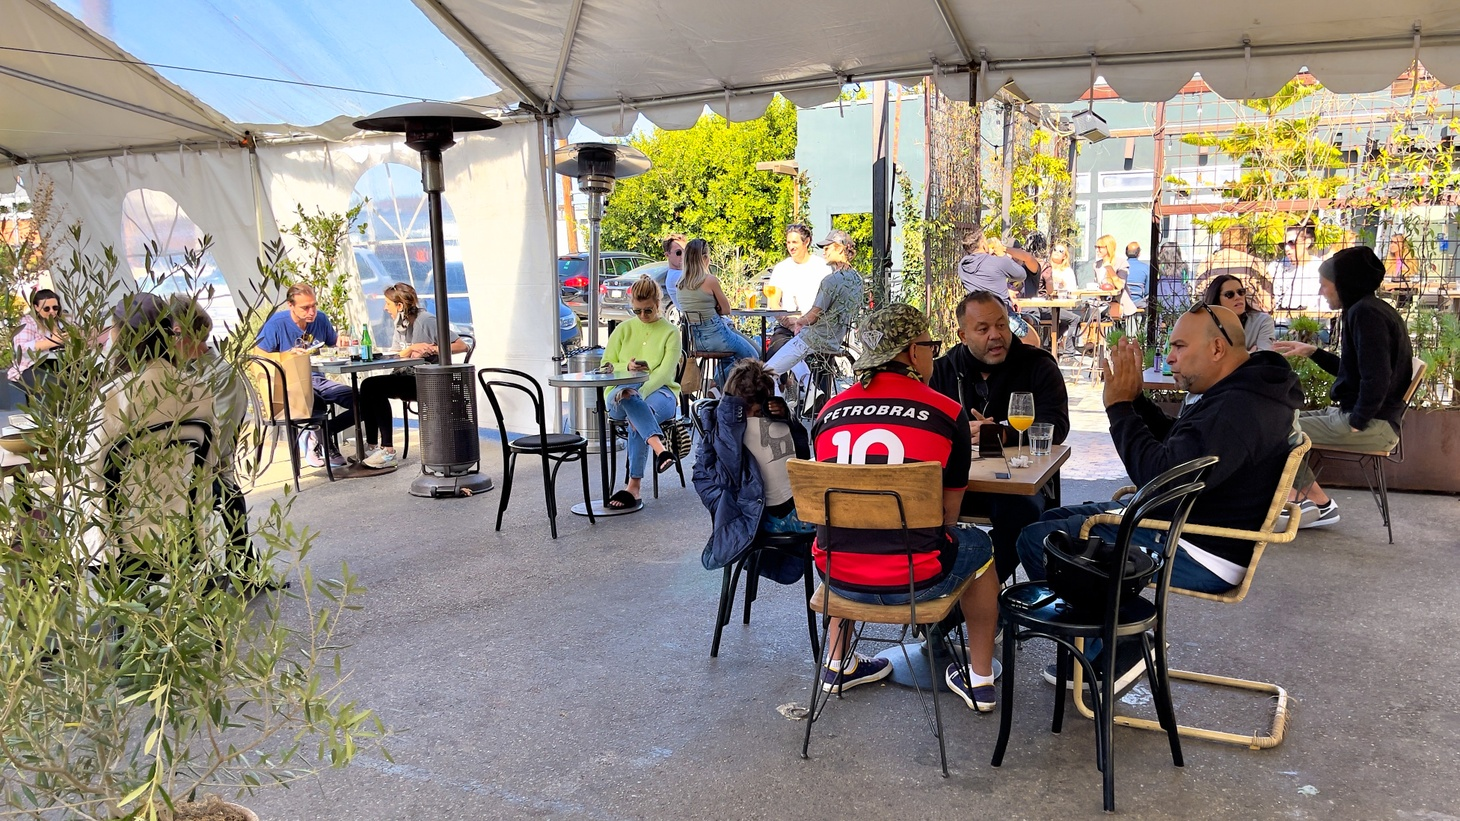 This cafe in Venice, California, recently resumed outdoor dining. The patio was crowded with customers on February 27, 2021.